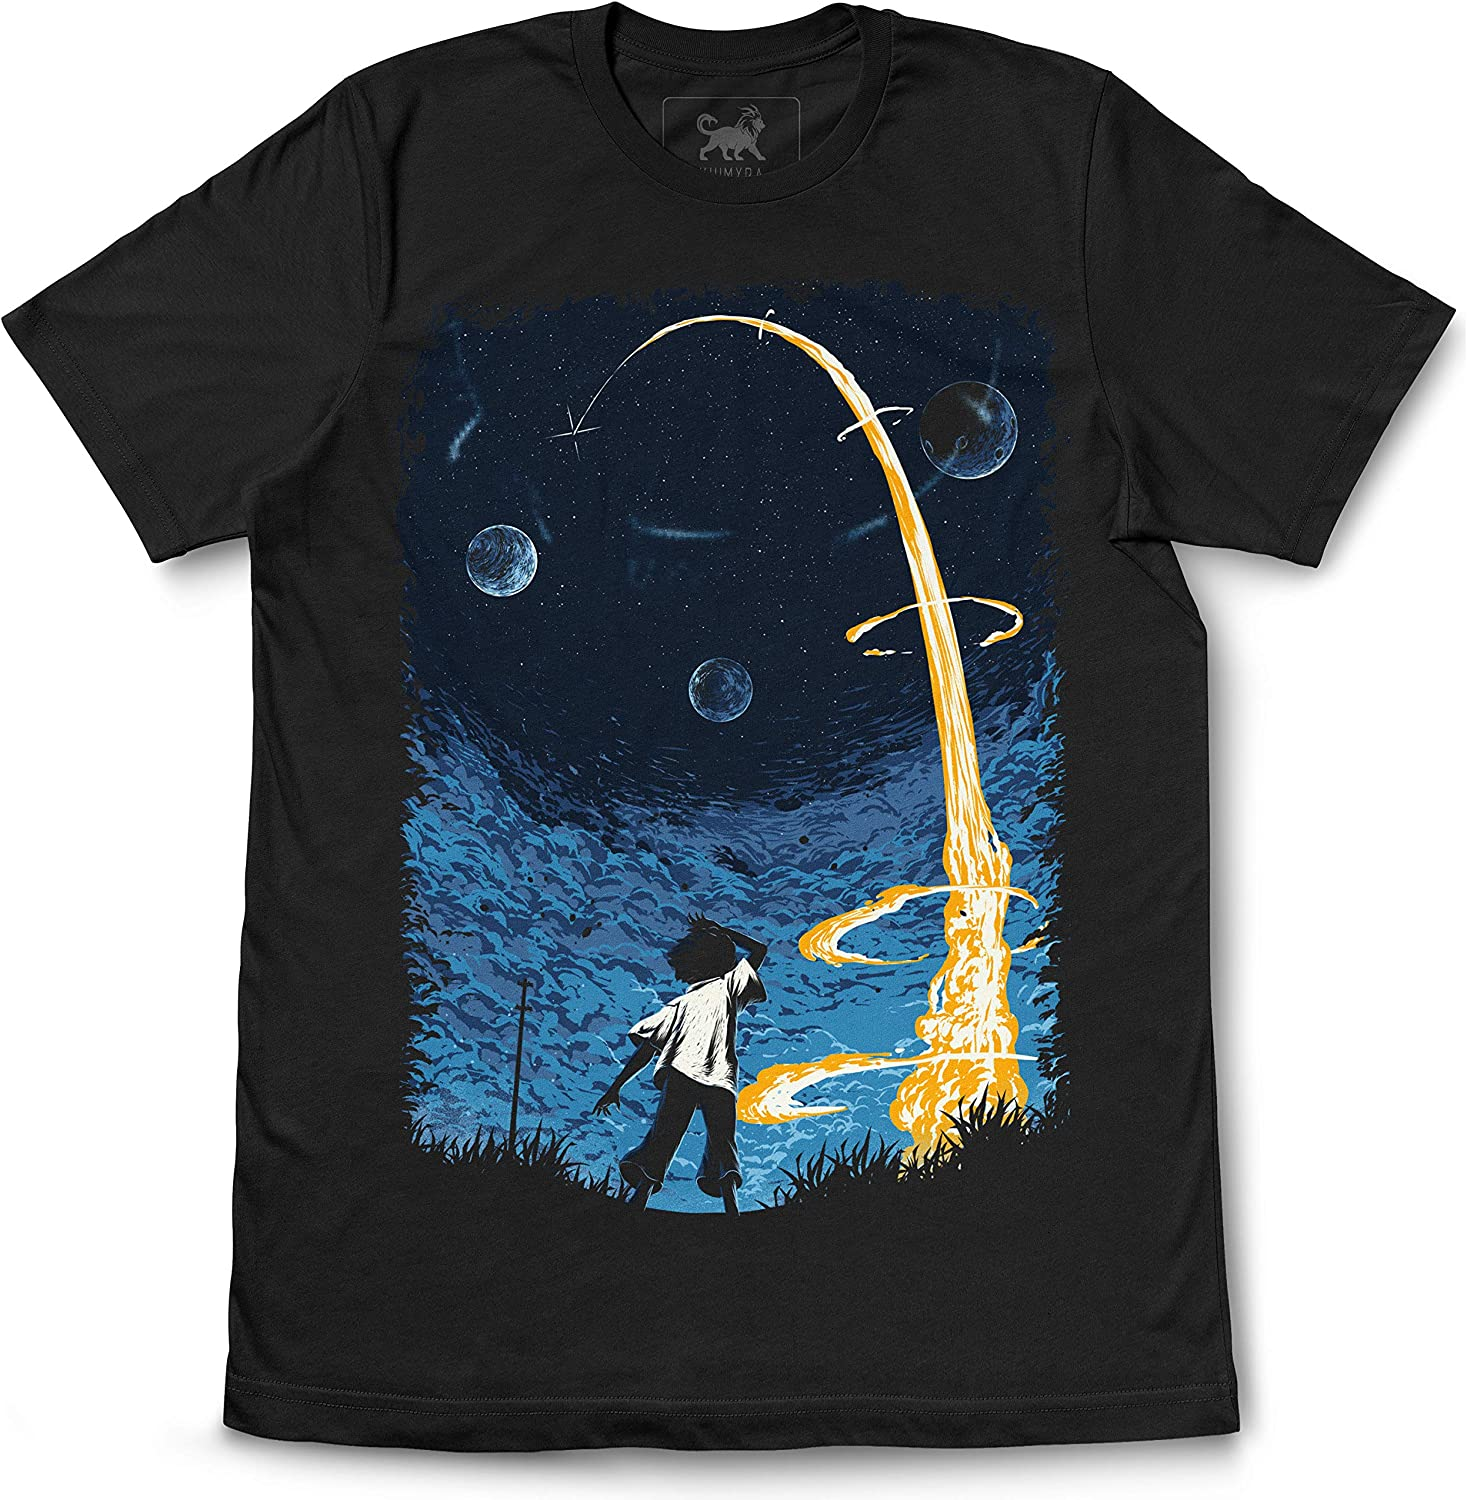 KHIMYRA Premium Graphic Tees for Men: Novelty T-Shirts & Cool Designs